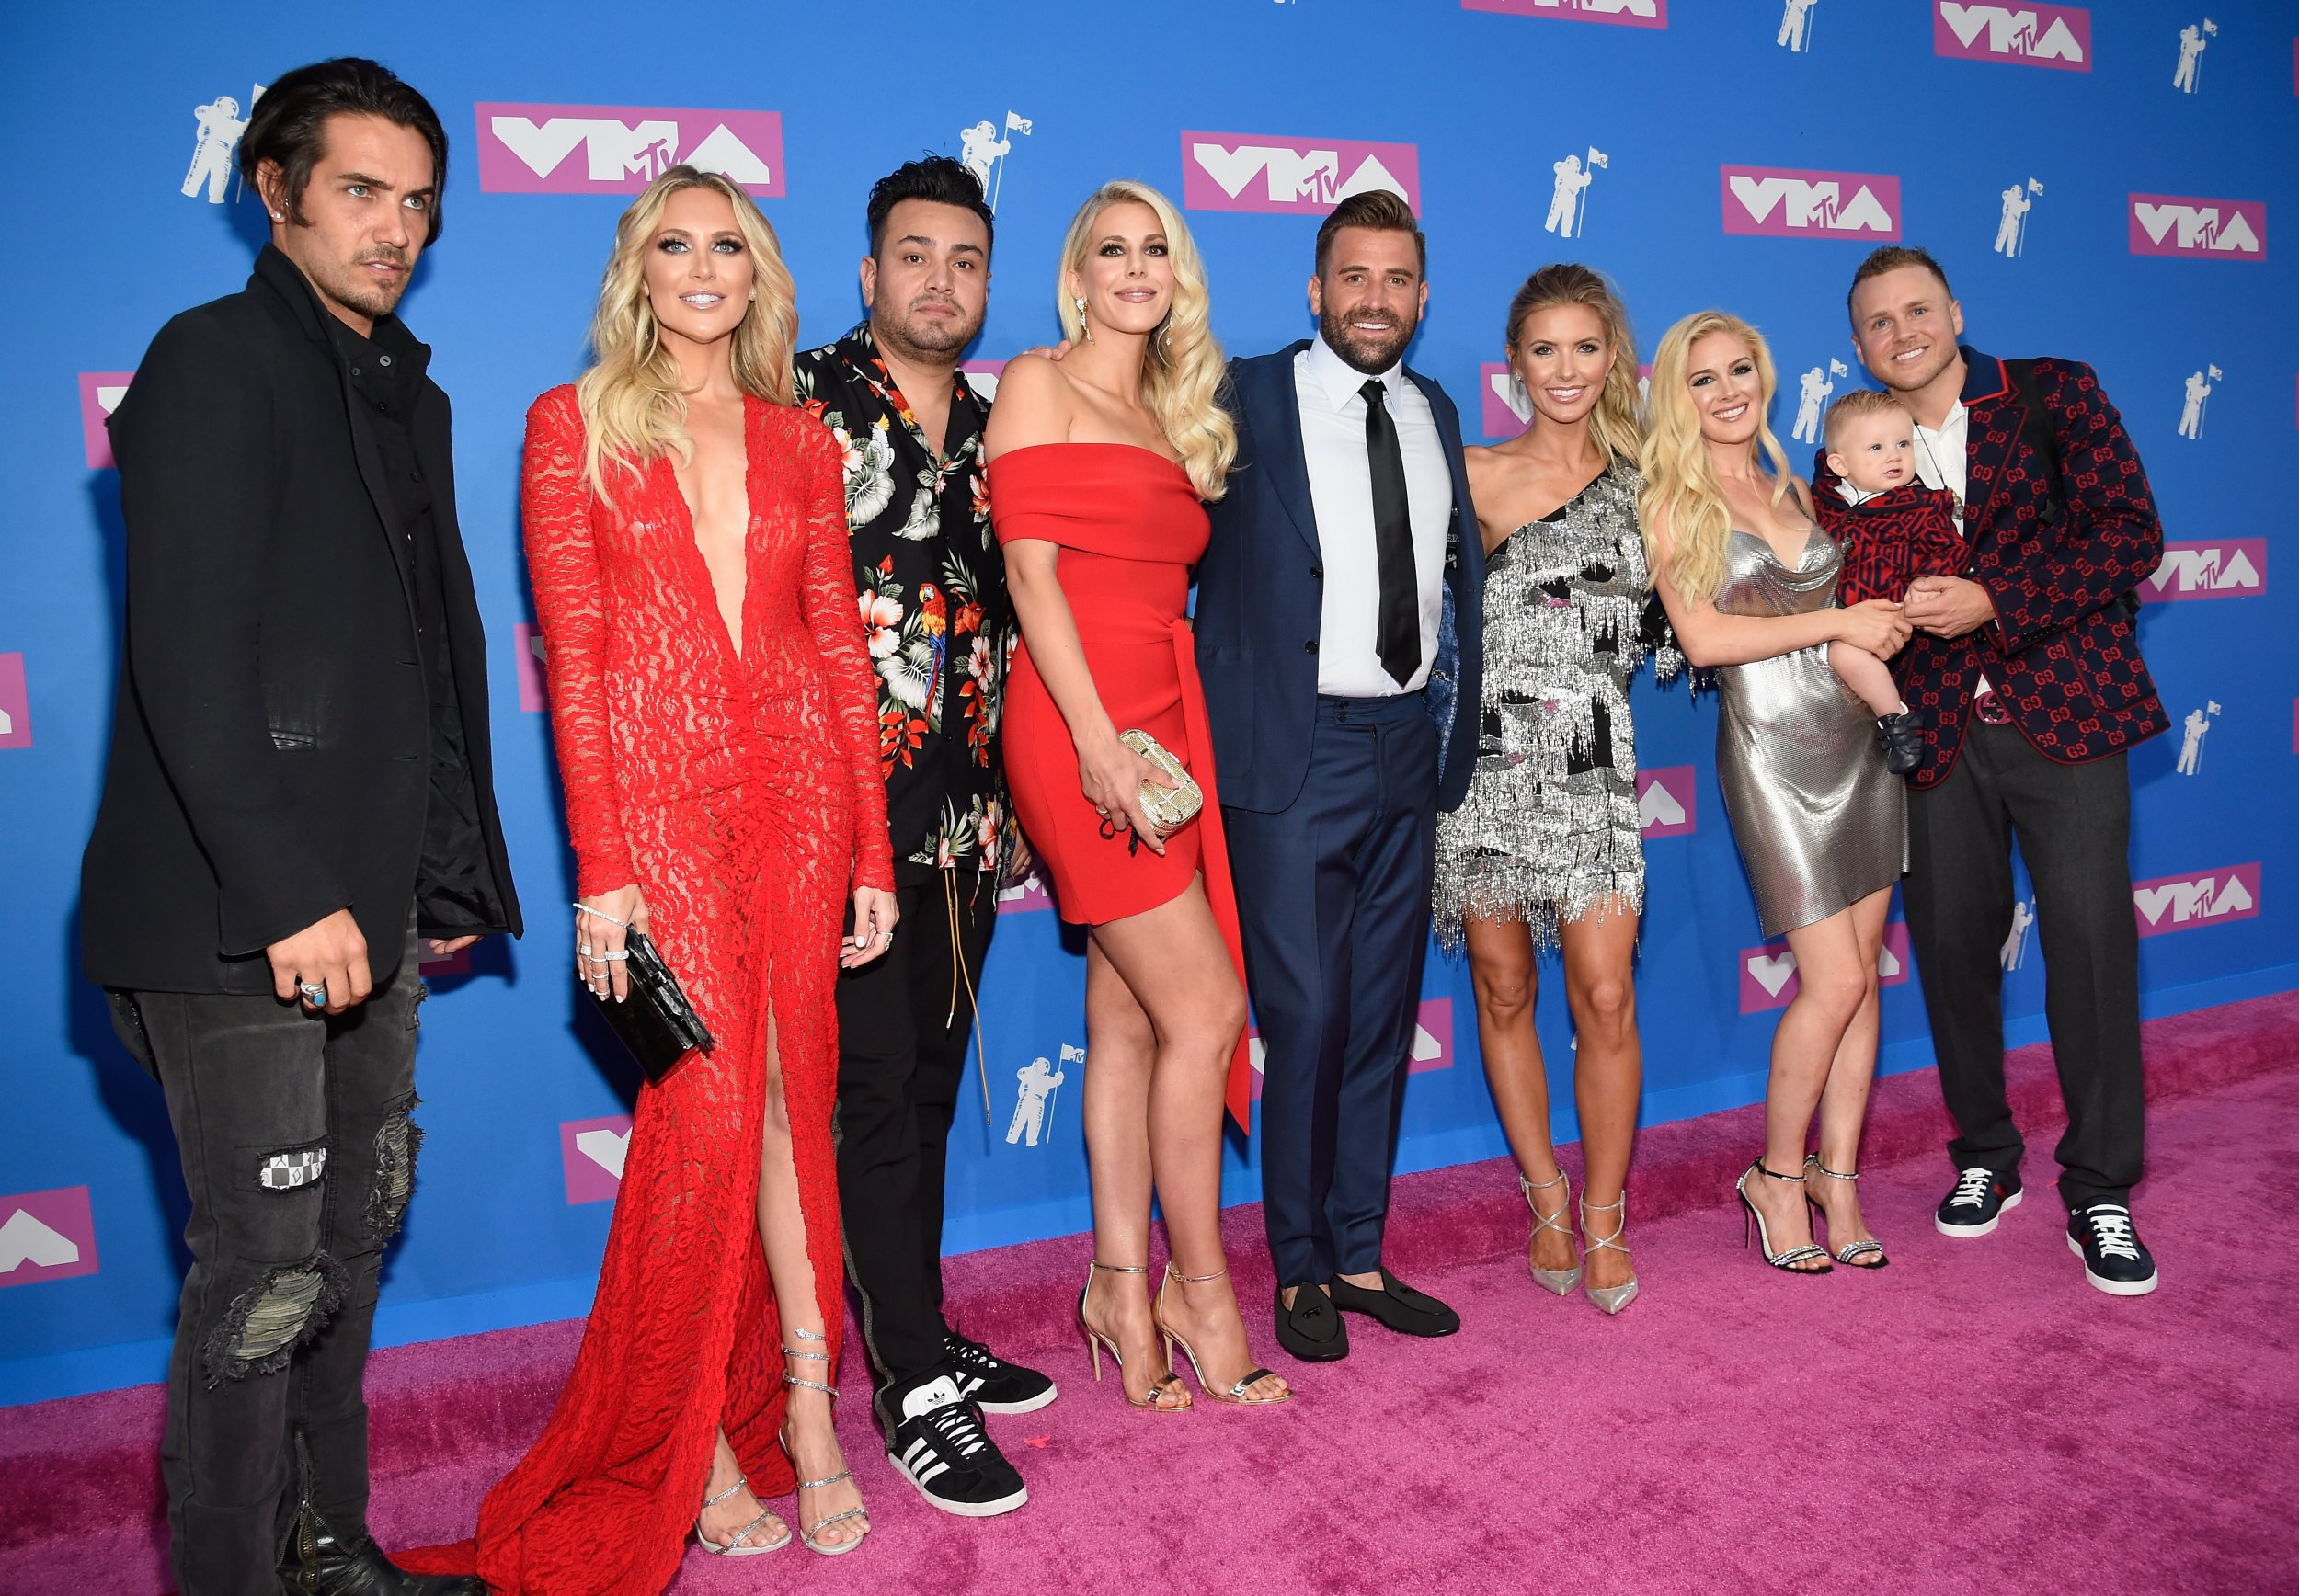 The Hills is one reunion we don't need: It's LC or bust